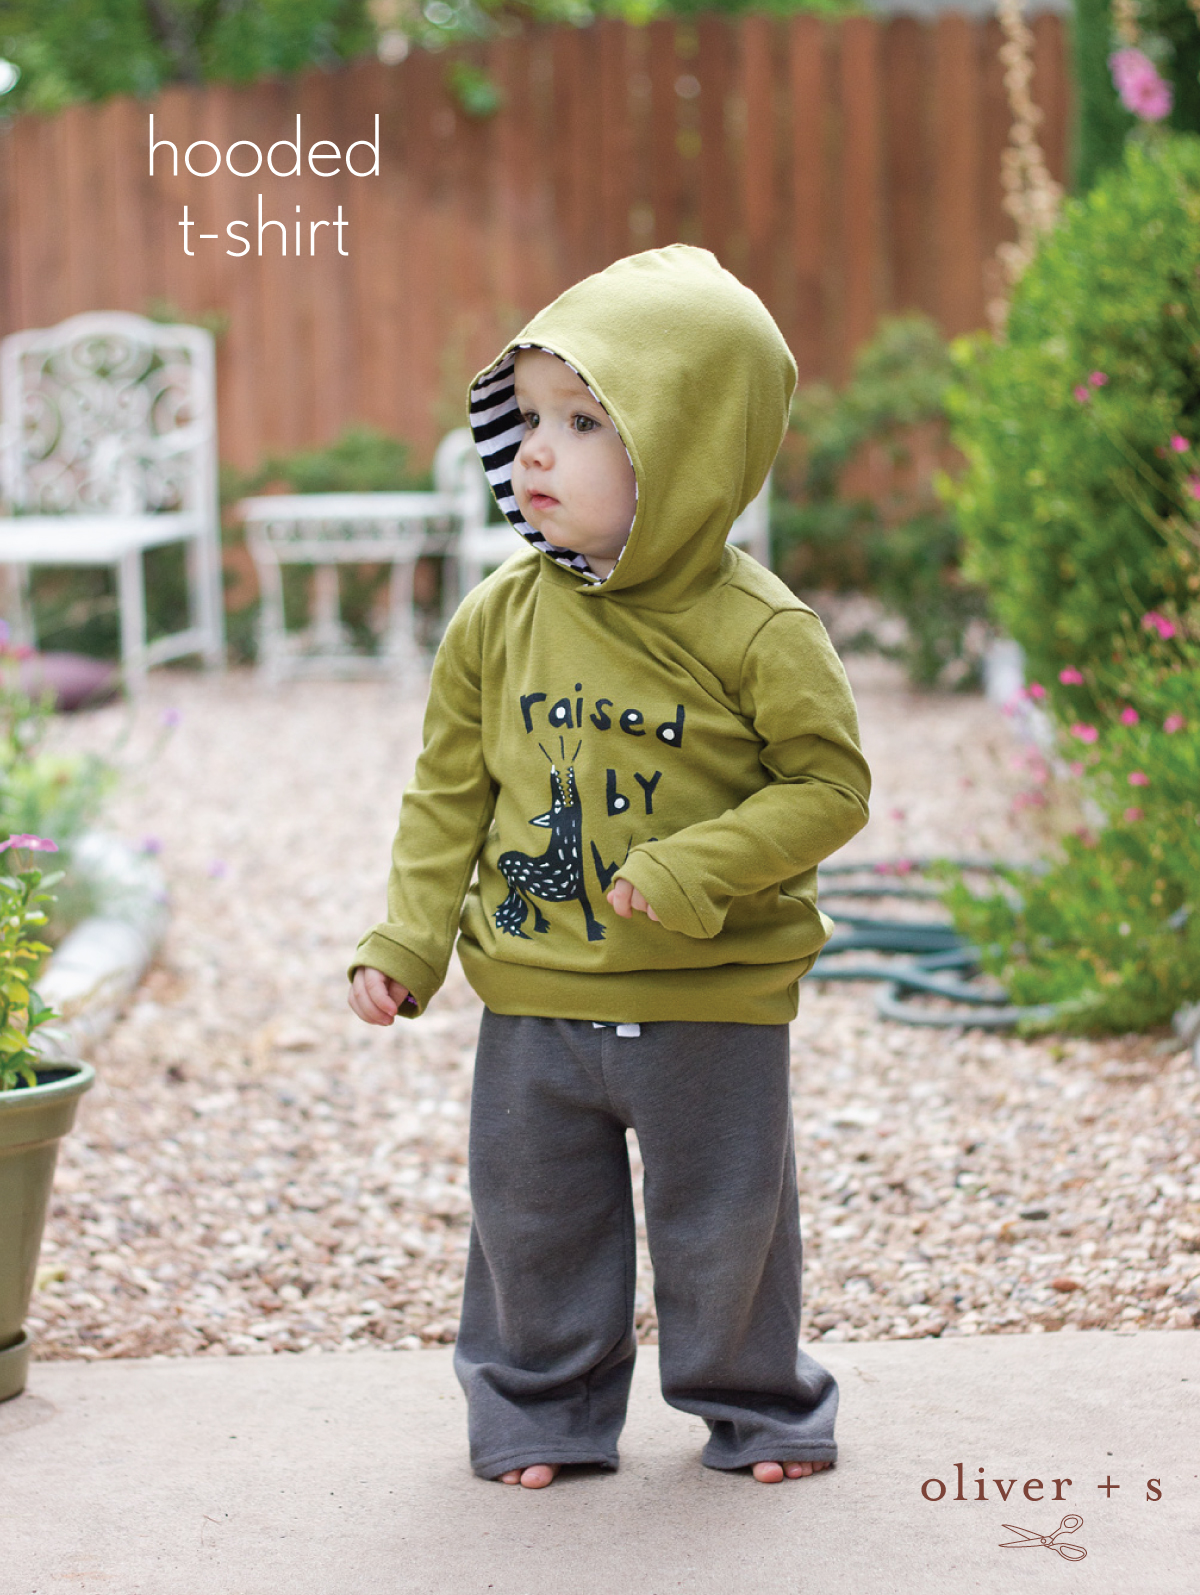 Hooded t shirt tutorial blog oliver s oliver s school bus t shirt with added hood jeuxipadfo Choice Image